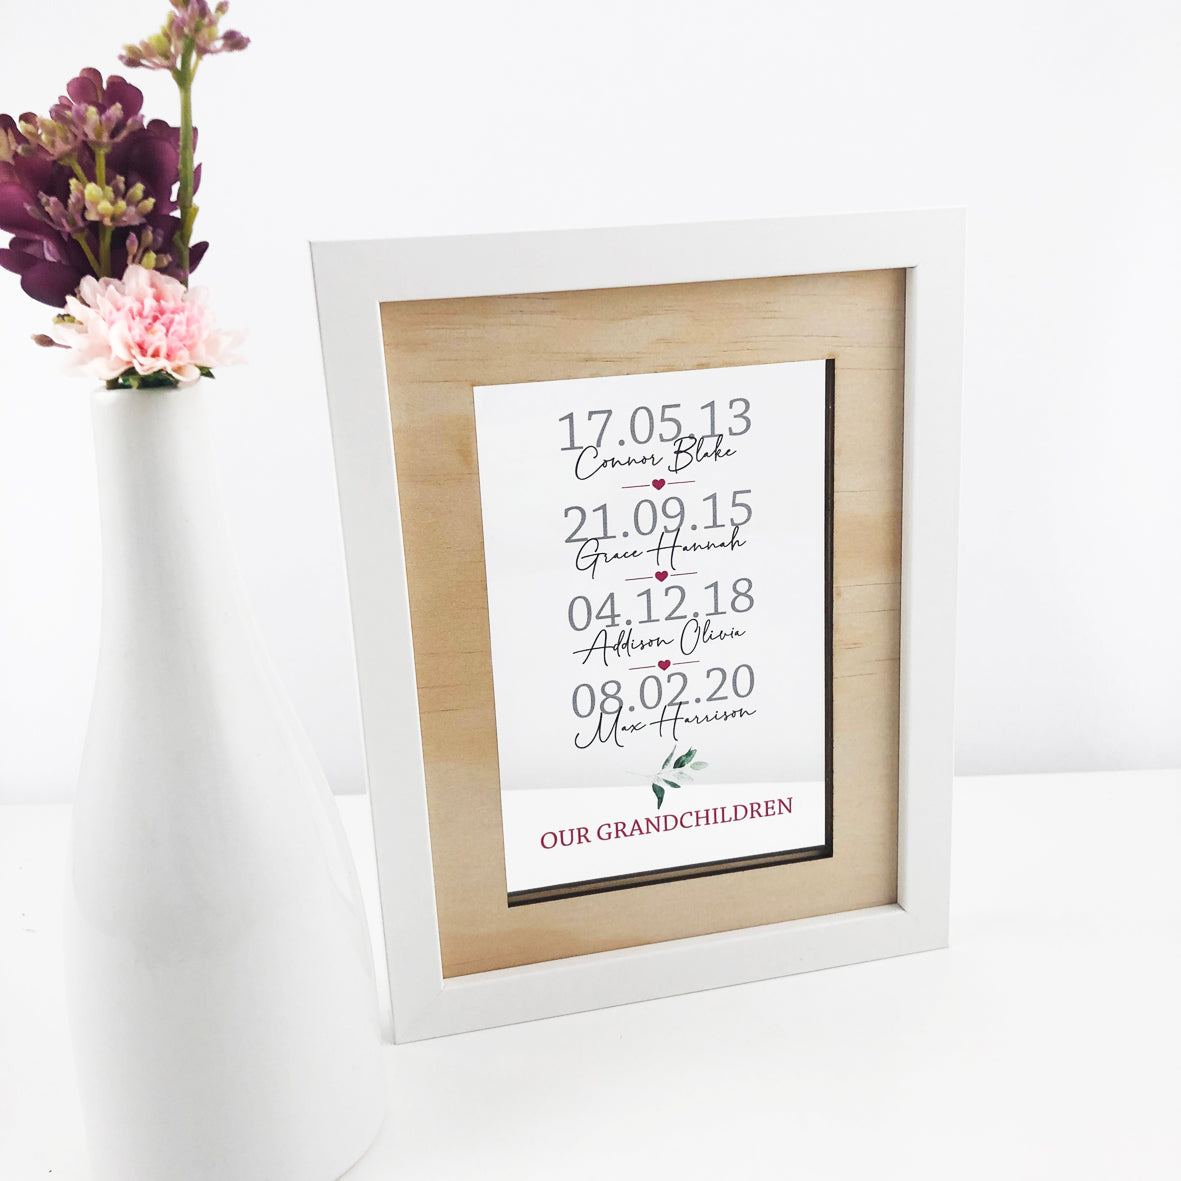 Personalised Printed Transparent Grandchildren Frame